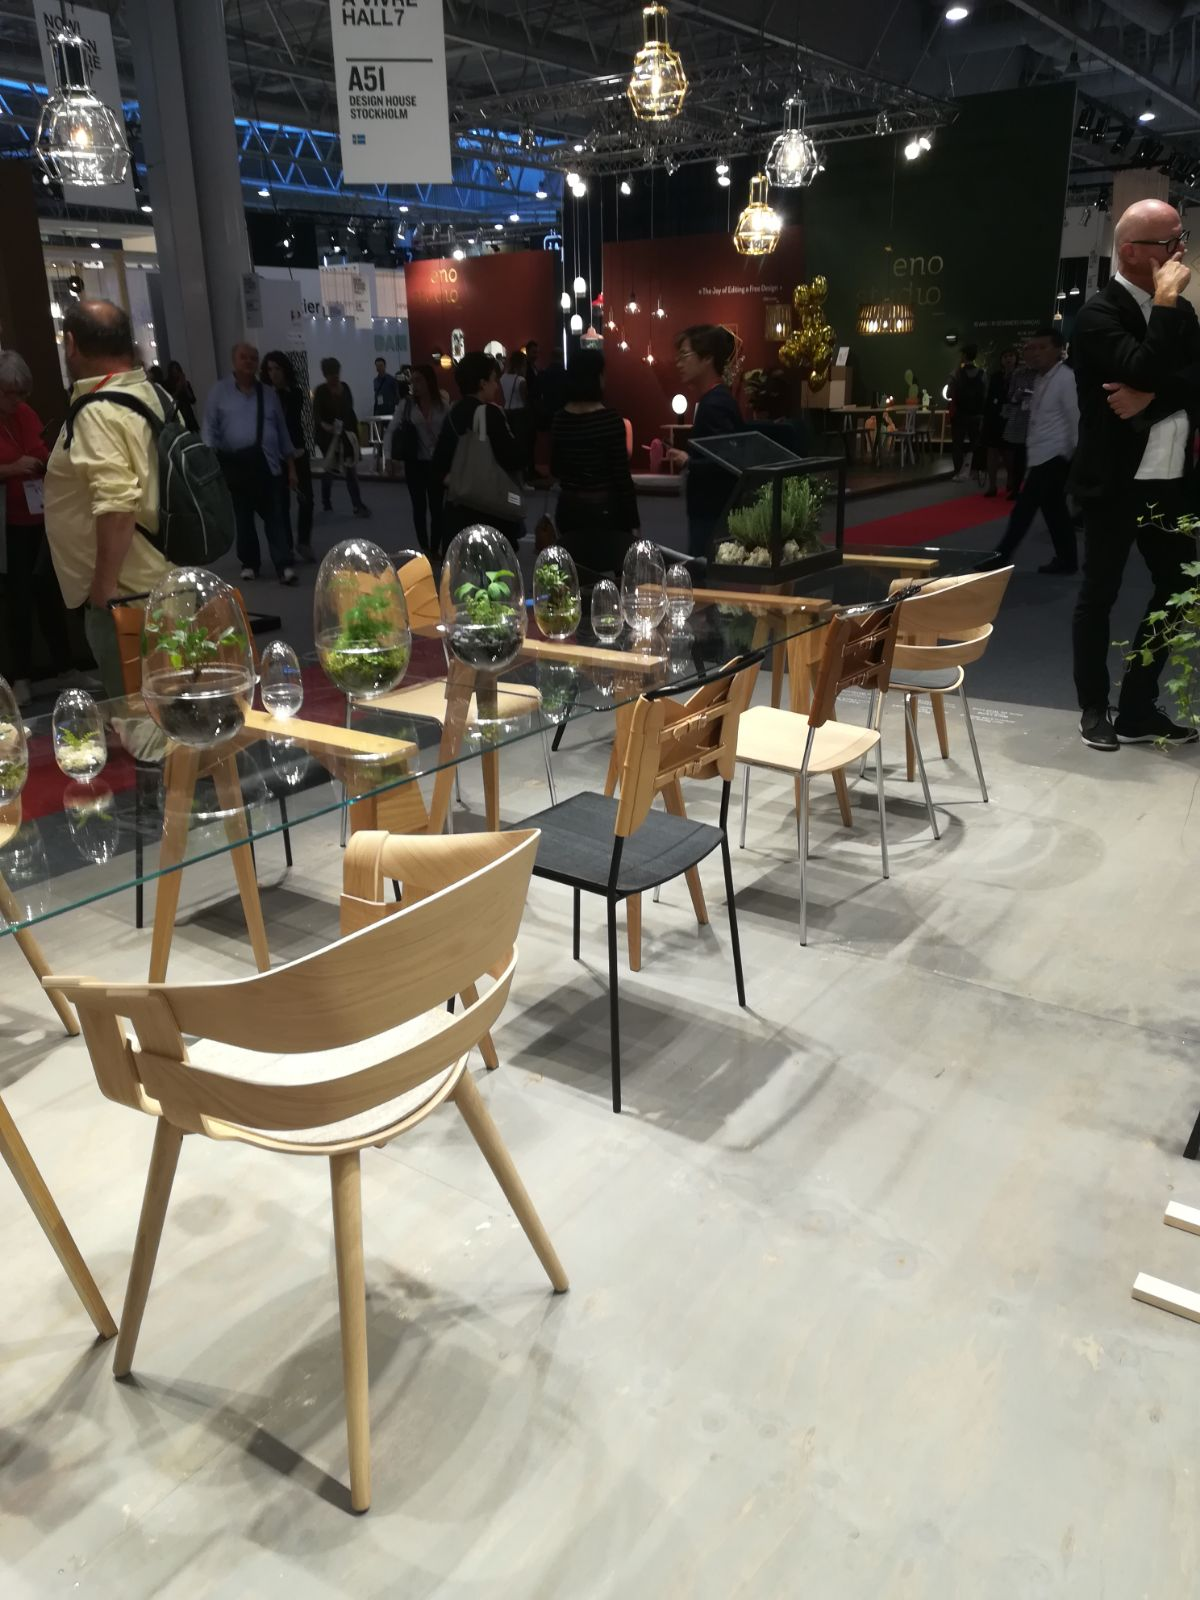 Let's Recap All The Best Moments from Maison et Objet 2017! (8) maison et objet 2017 Let's Recap All The Best Moments from Maison et Objet 2017! Lets Recap All The Best Moments from Maison et Objet 2017 8